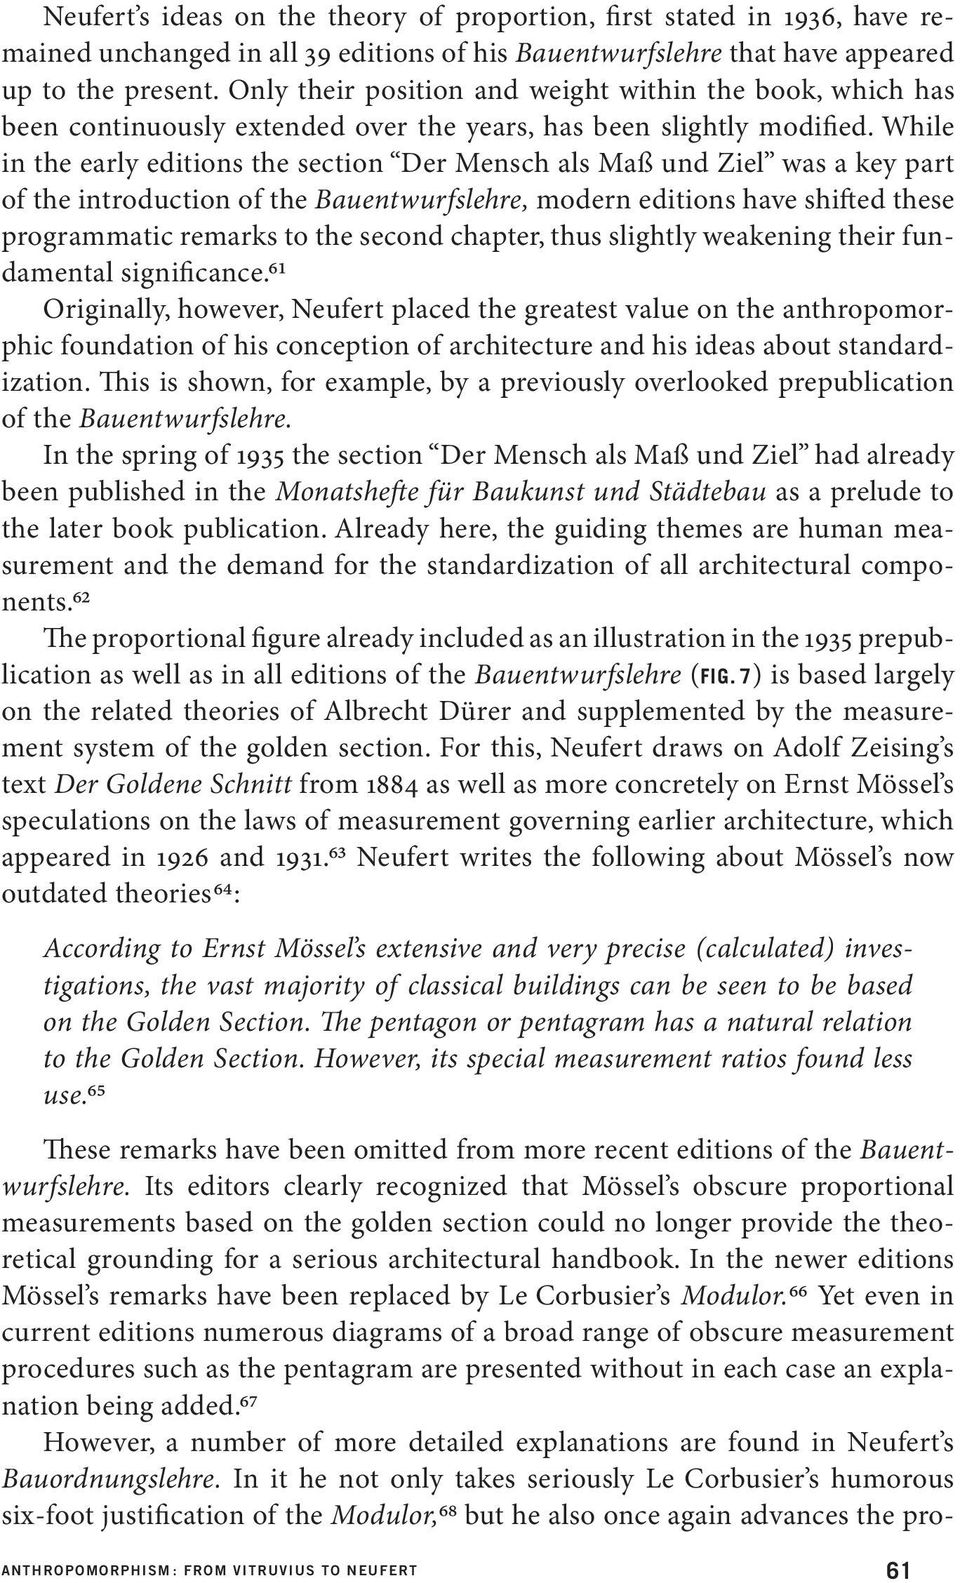 While in the early editions the section Der Mensch als Maß und Ziel was a key part of the introduction of the Bauentwurfslehre, modern editions have shifted these programmatic remarks to the second